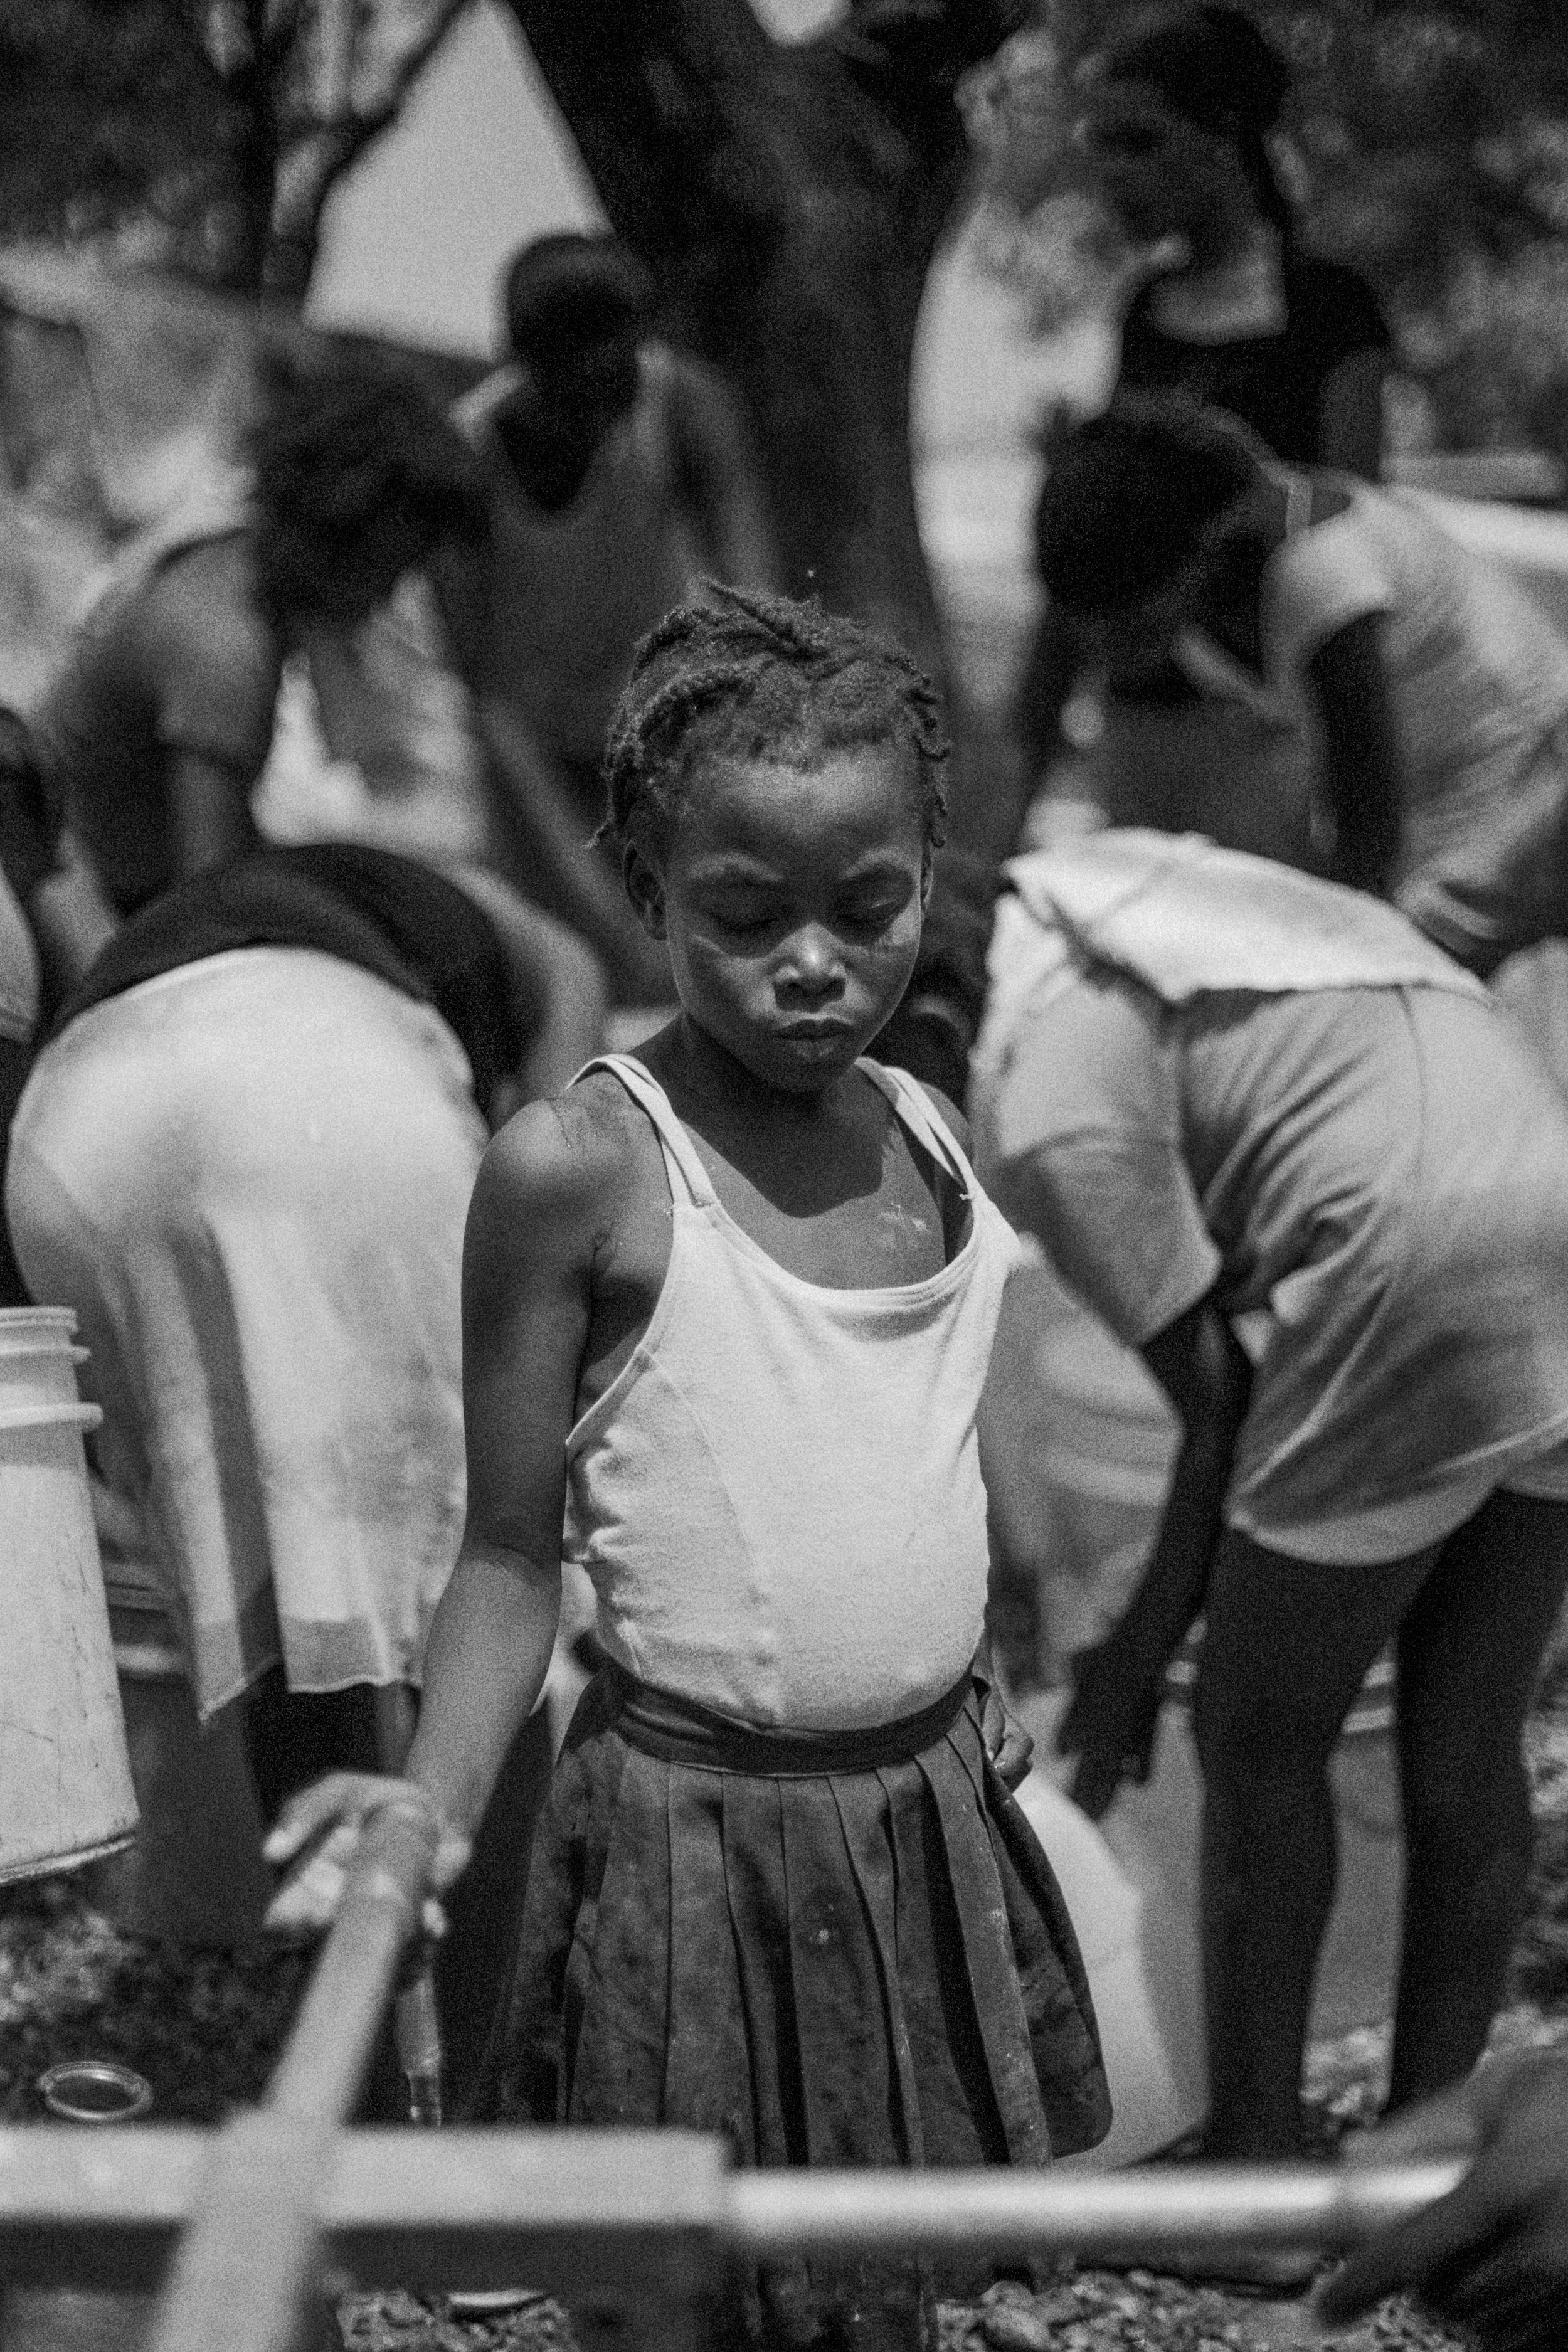 January 17, 2018   Haiti remembrance day 5  Since Monday I've been attending a fantastic fellowship at the Dart Center for  #Journalism  and Trauma at  #Columbia  University and we've been addressing apart form trauma healing as well, something so important for the ongoing needs in Haiti.  The photo of these two children has been on my mind quite a bit since I began posting this series of photos from Haiti. I took it in the Petionviille camp for the displaced. Although it had more resources than other camps, it was an incredibly difficult place to live with drinkable water scarce and rain water abundant that leaked through tents making it impossible to sleep and further inundated the camp creating a hard muddy existence.  The effect on children was severe. For much of the time when I looked at them I didn't see them as children but as people much older, battered and disillusioned by the hard life of living in an impoverished IDP camp. The picture of the girl following this photo waiting at a water pump exemplified that for me.  In the same camp, however was a remarkable yoga program run by an NGO which unfortunately I've forgotten the name of. I took an extensive series of portraits of the children feeling their breaths closing their eyes. Free of responsibility, pain and burden, they were children again. The yoga,  #meditation  and caring of the people who put this program together gave that back to them.  I think a lot can be learnt from this program of  #healing . In situations of such dire need it's understandable to perhaps perceive a yoga program as frivolous—it's anything but. It addresses essential mental health issues that far often go overlooked and targets issues that can cause debilitating  #PTSI   #PTSD  in the future.  Having documented the hardship that people go though I feel it's equally if not even more important to also identify programs and strategies that help people past their  #trauma , something that I will be devoting a lot more time to in t